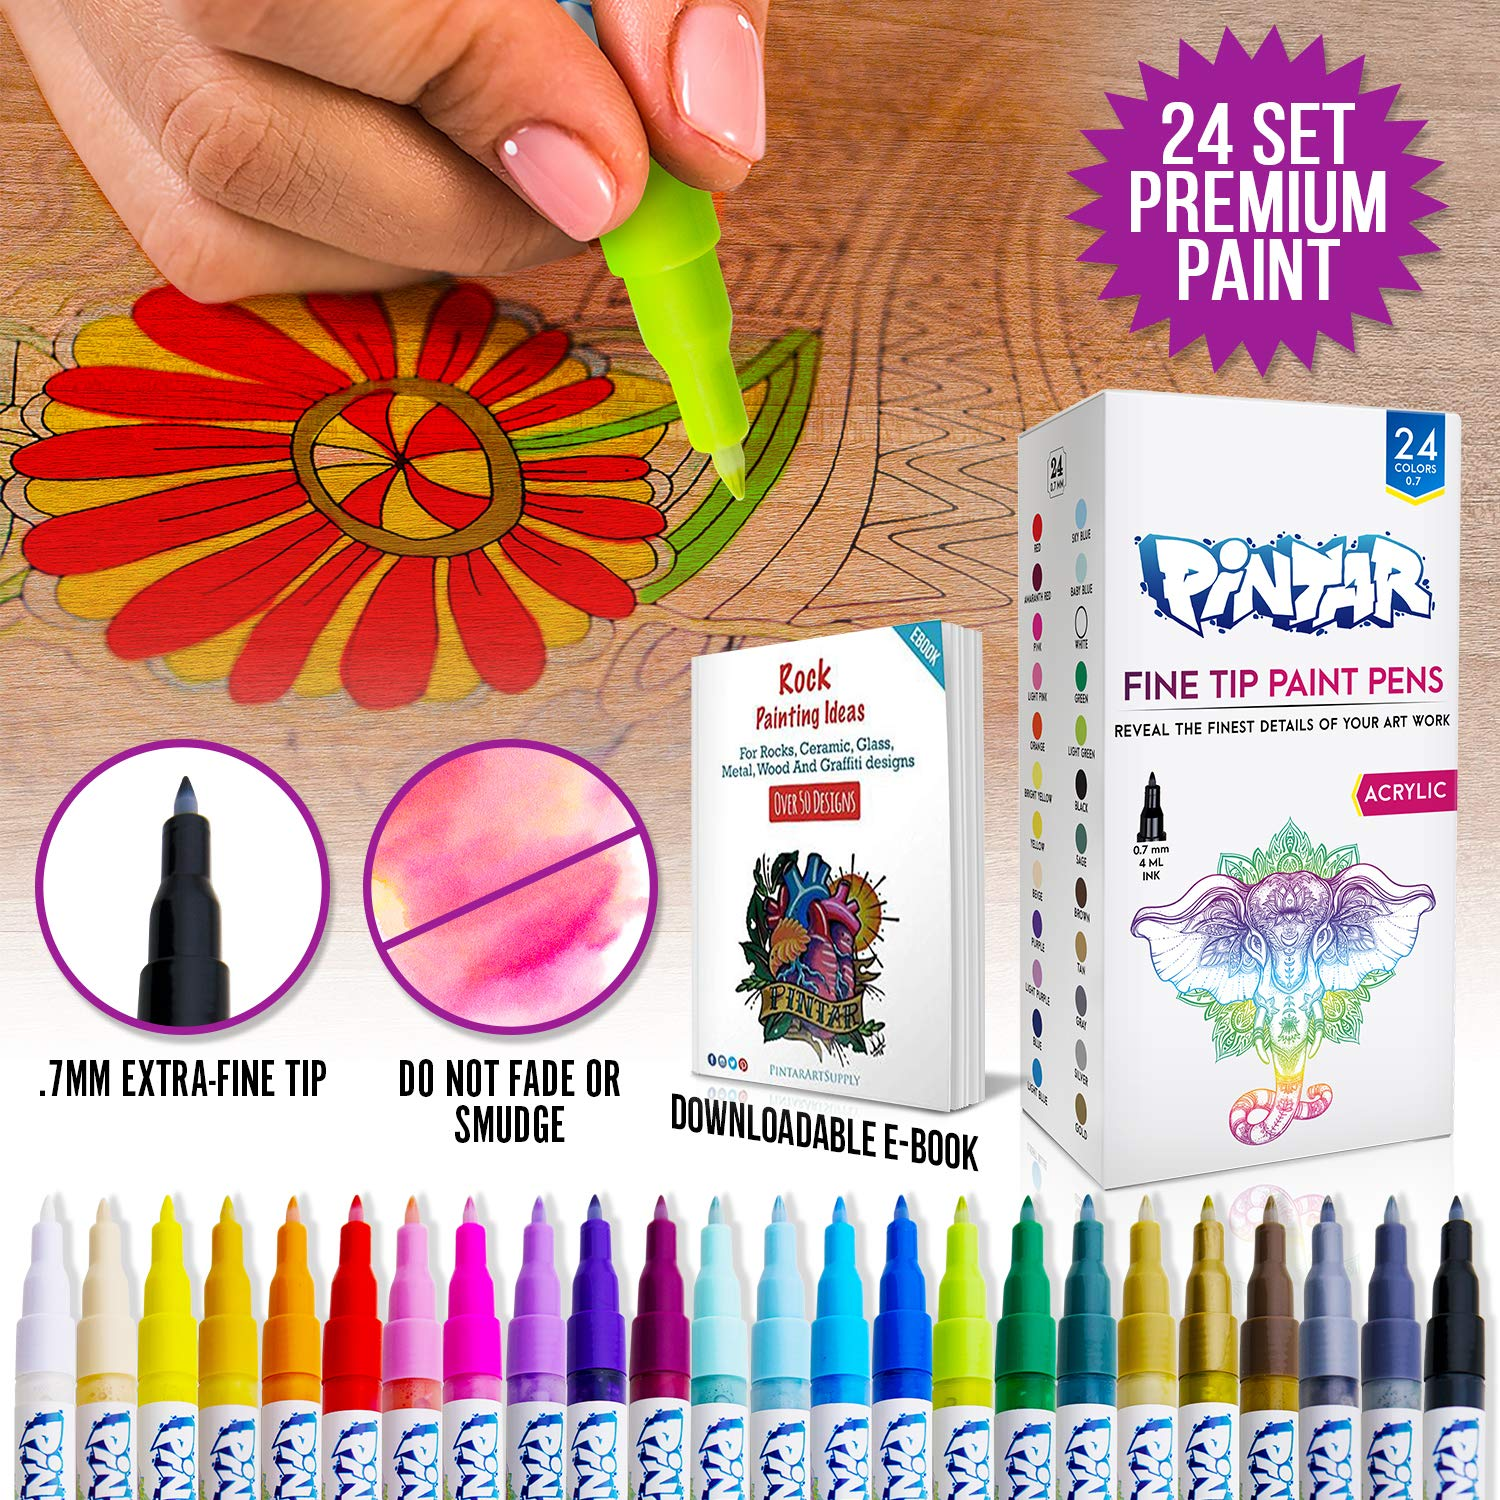 PINTAR - Acrylic Fine Tip Paint Pens For Rock Painting Art - 24 Pack Vibrant Colors for Wood, Glass, Metal and Ceramic - Water Resistant and Quick Drying Ink For Arts & Crafts by PINTAR (Image #8)